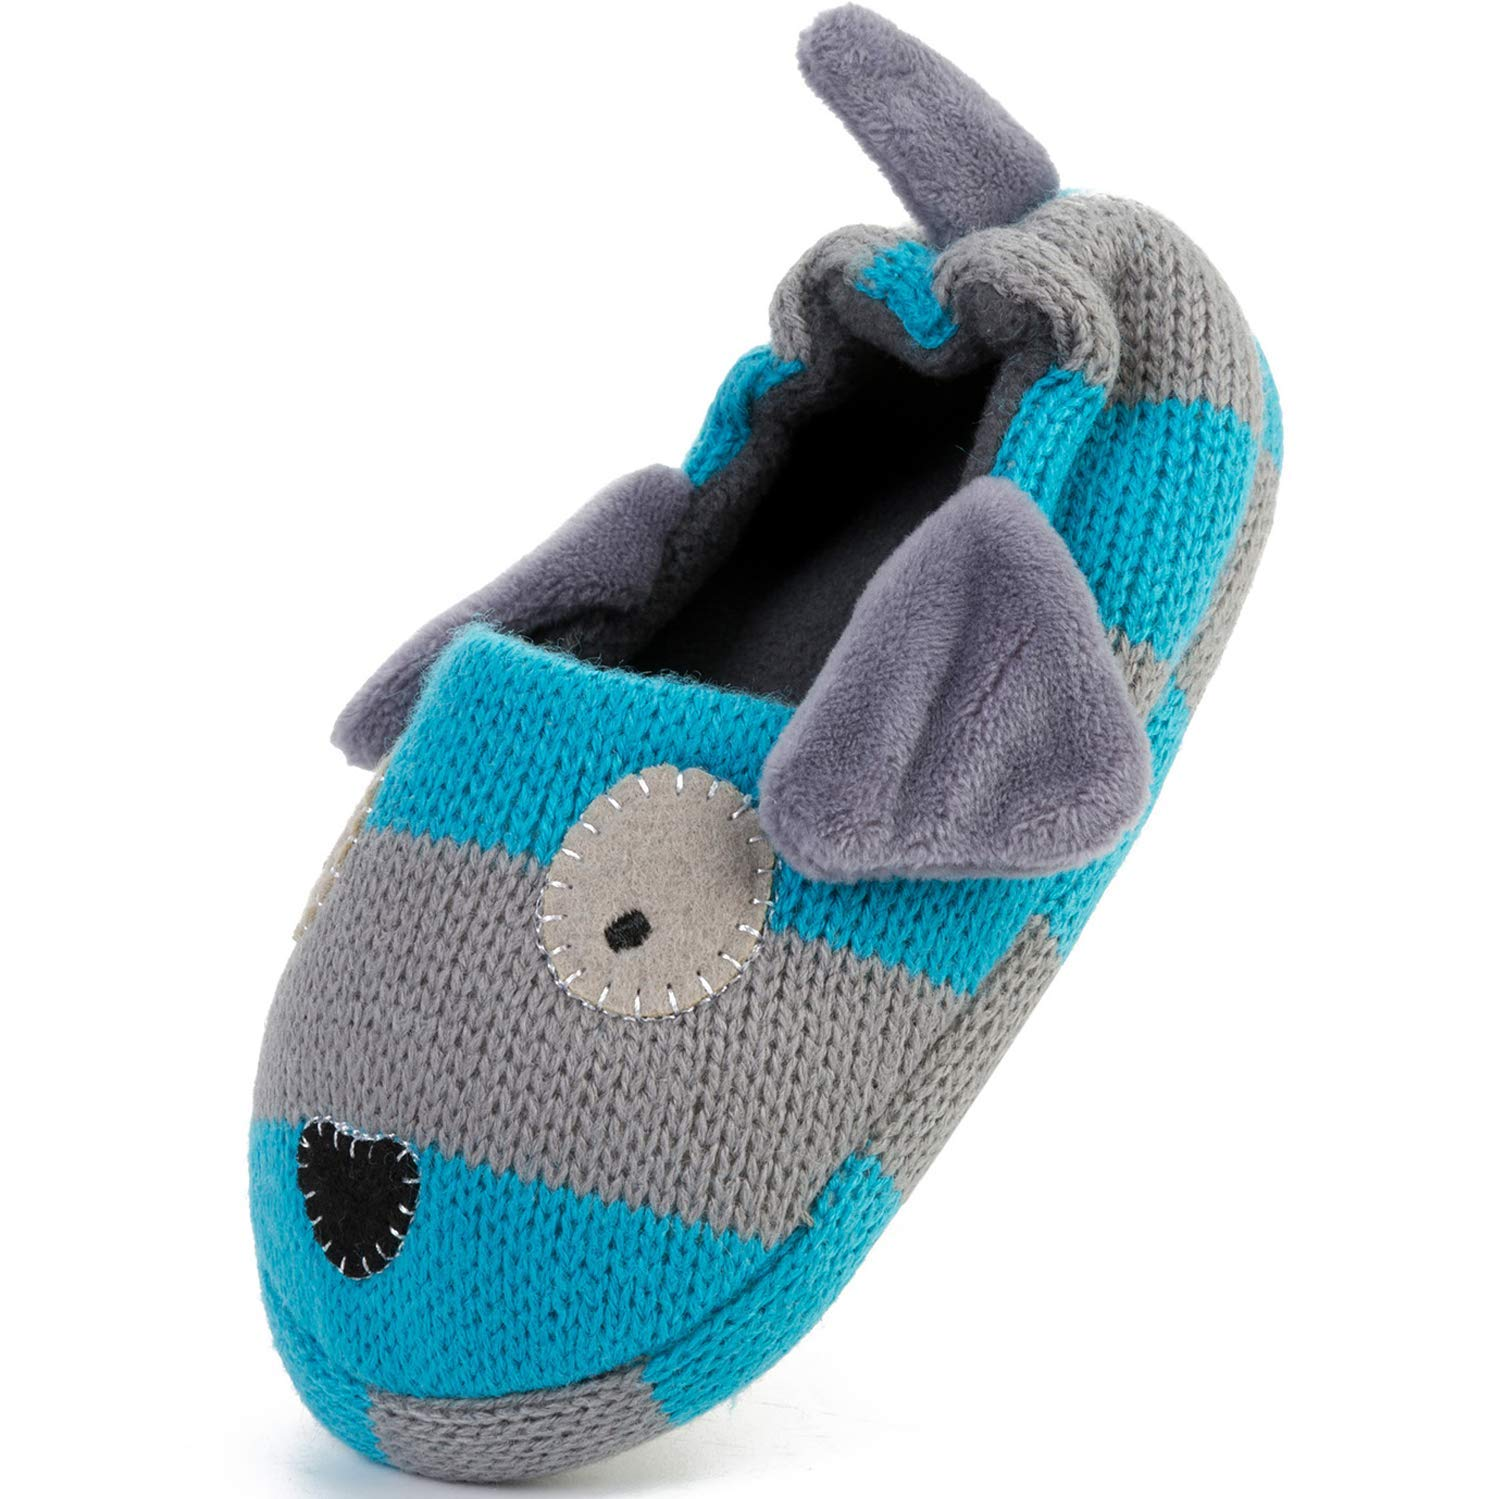 FEETCITY Toddler Boys' Doggy Slipper Cartoon Puppy Crochet Shoes Size 7.5-8